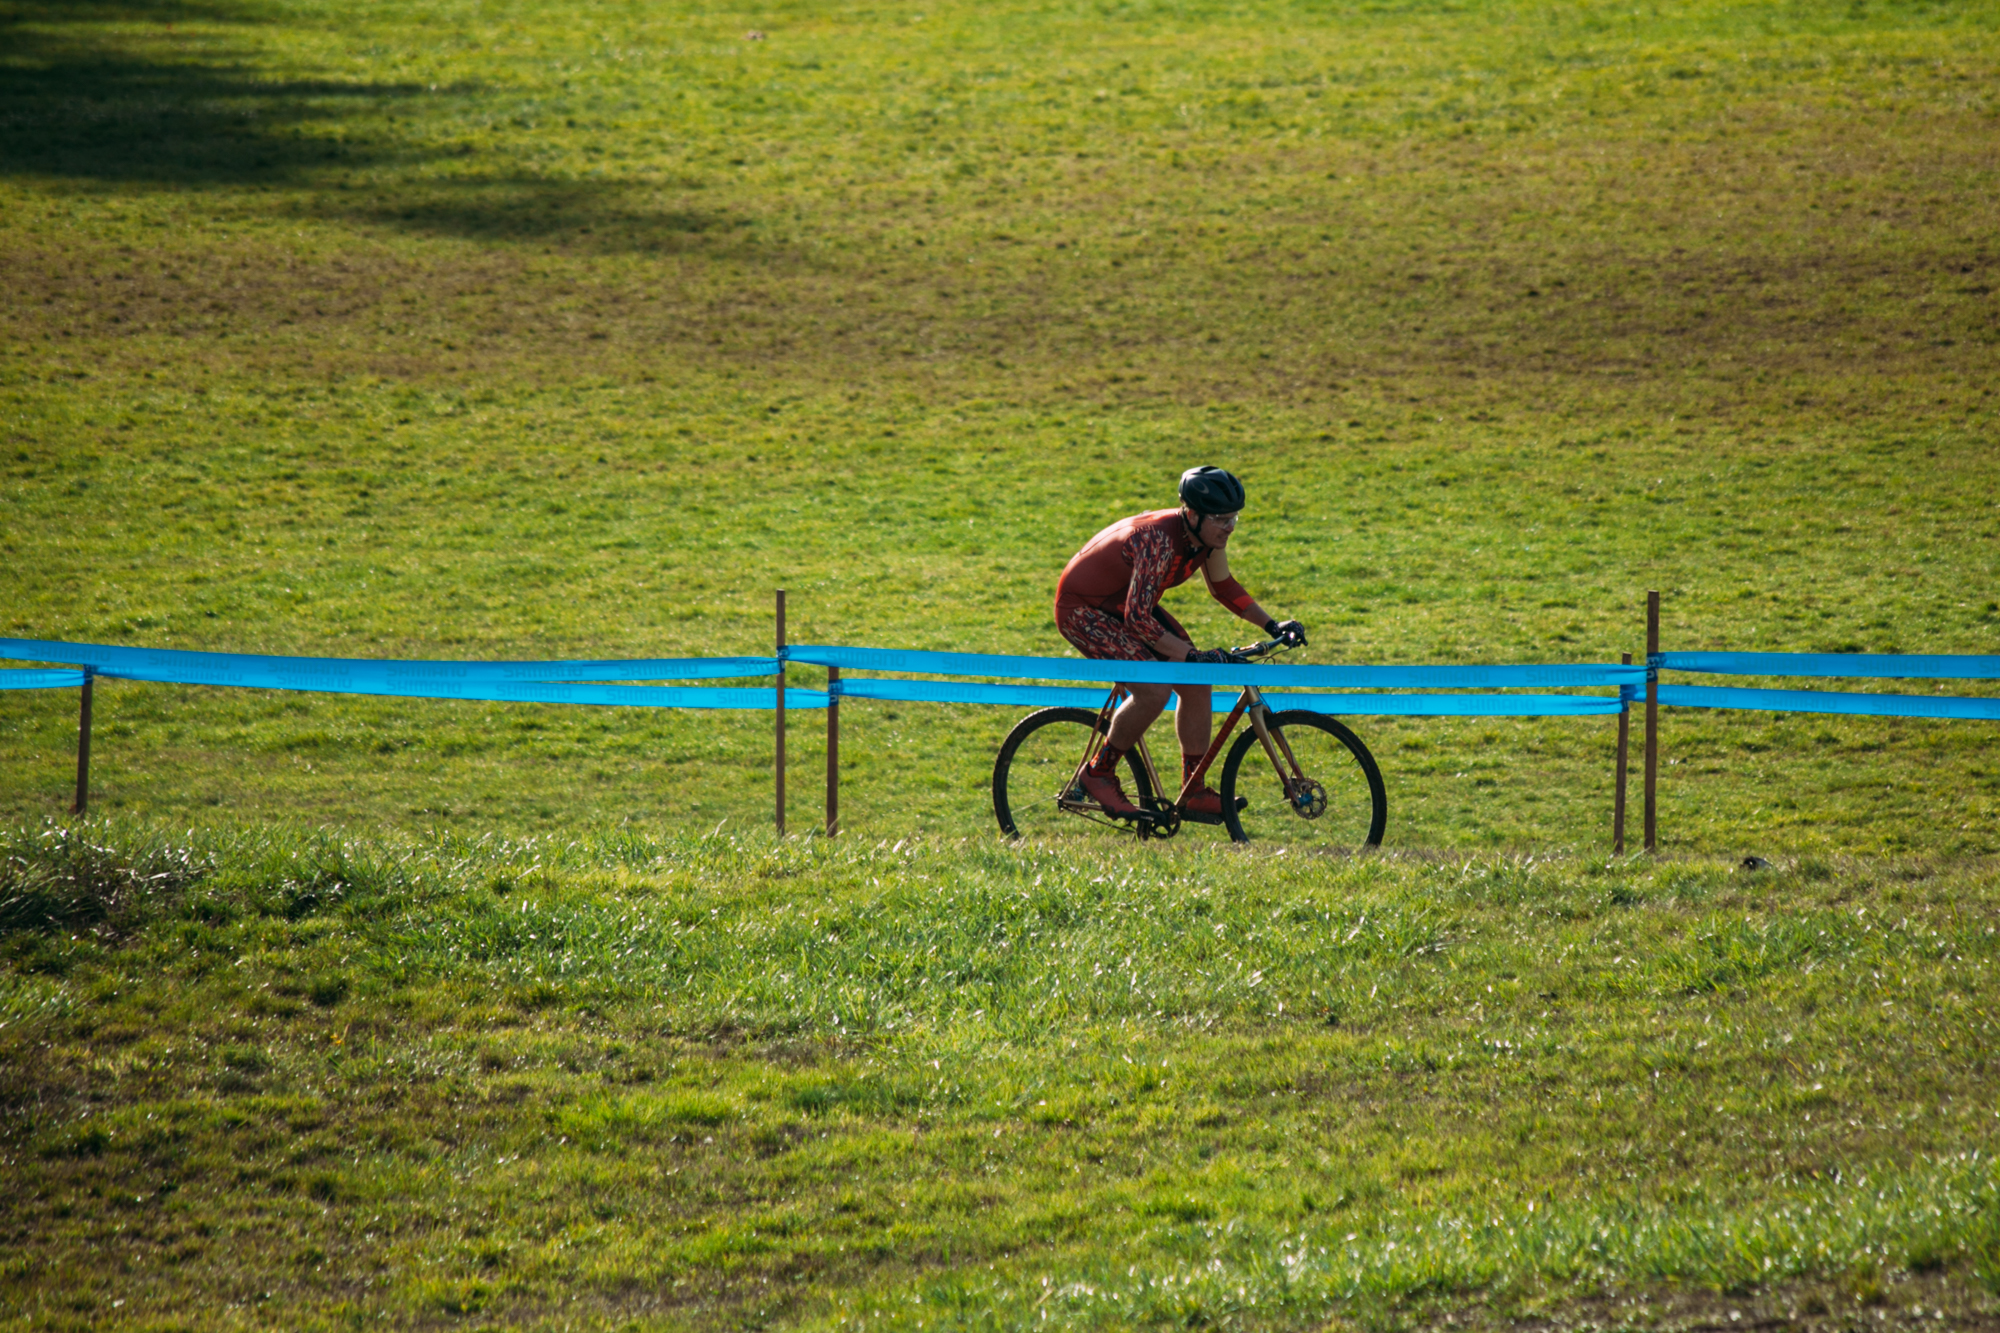 Cyclocross18_CCCX_RainierHS-113-mettlecycling.jpg